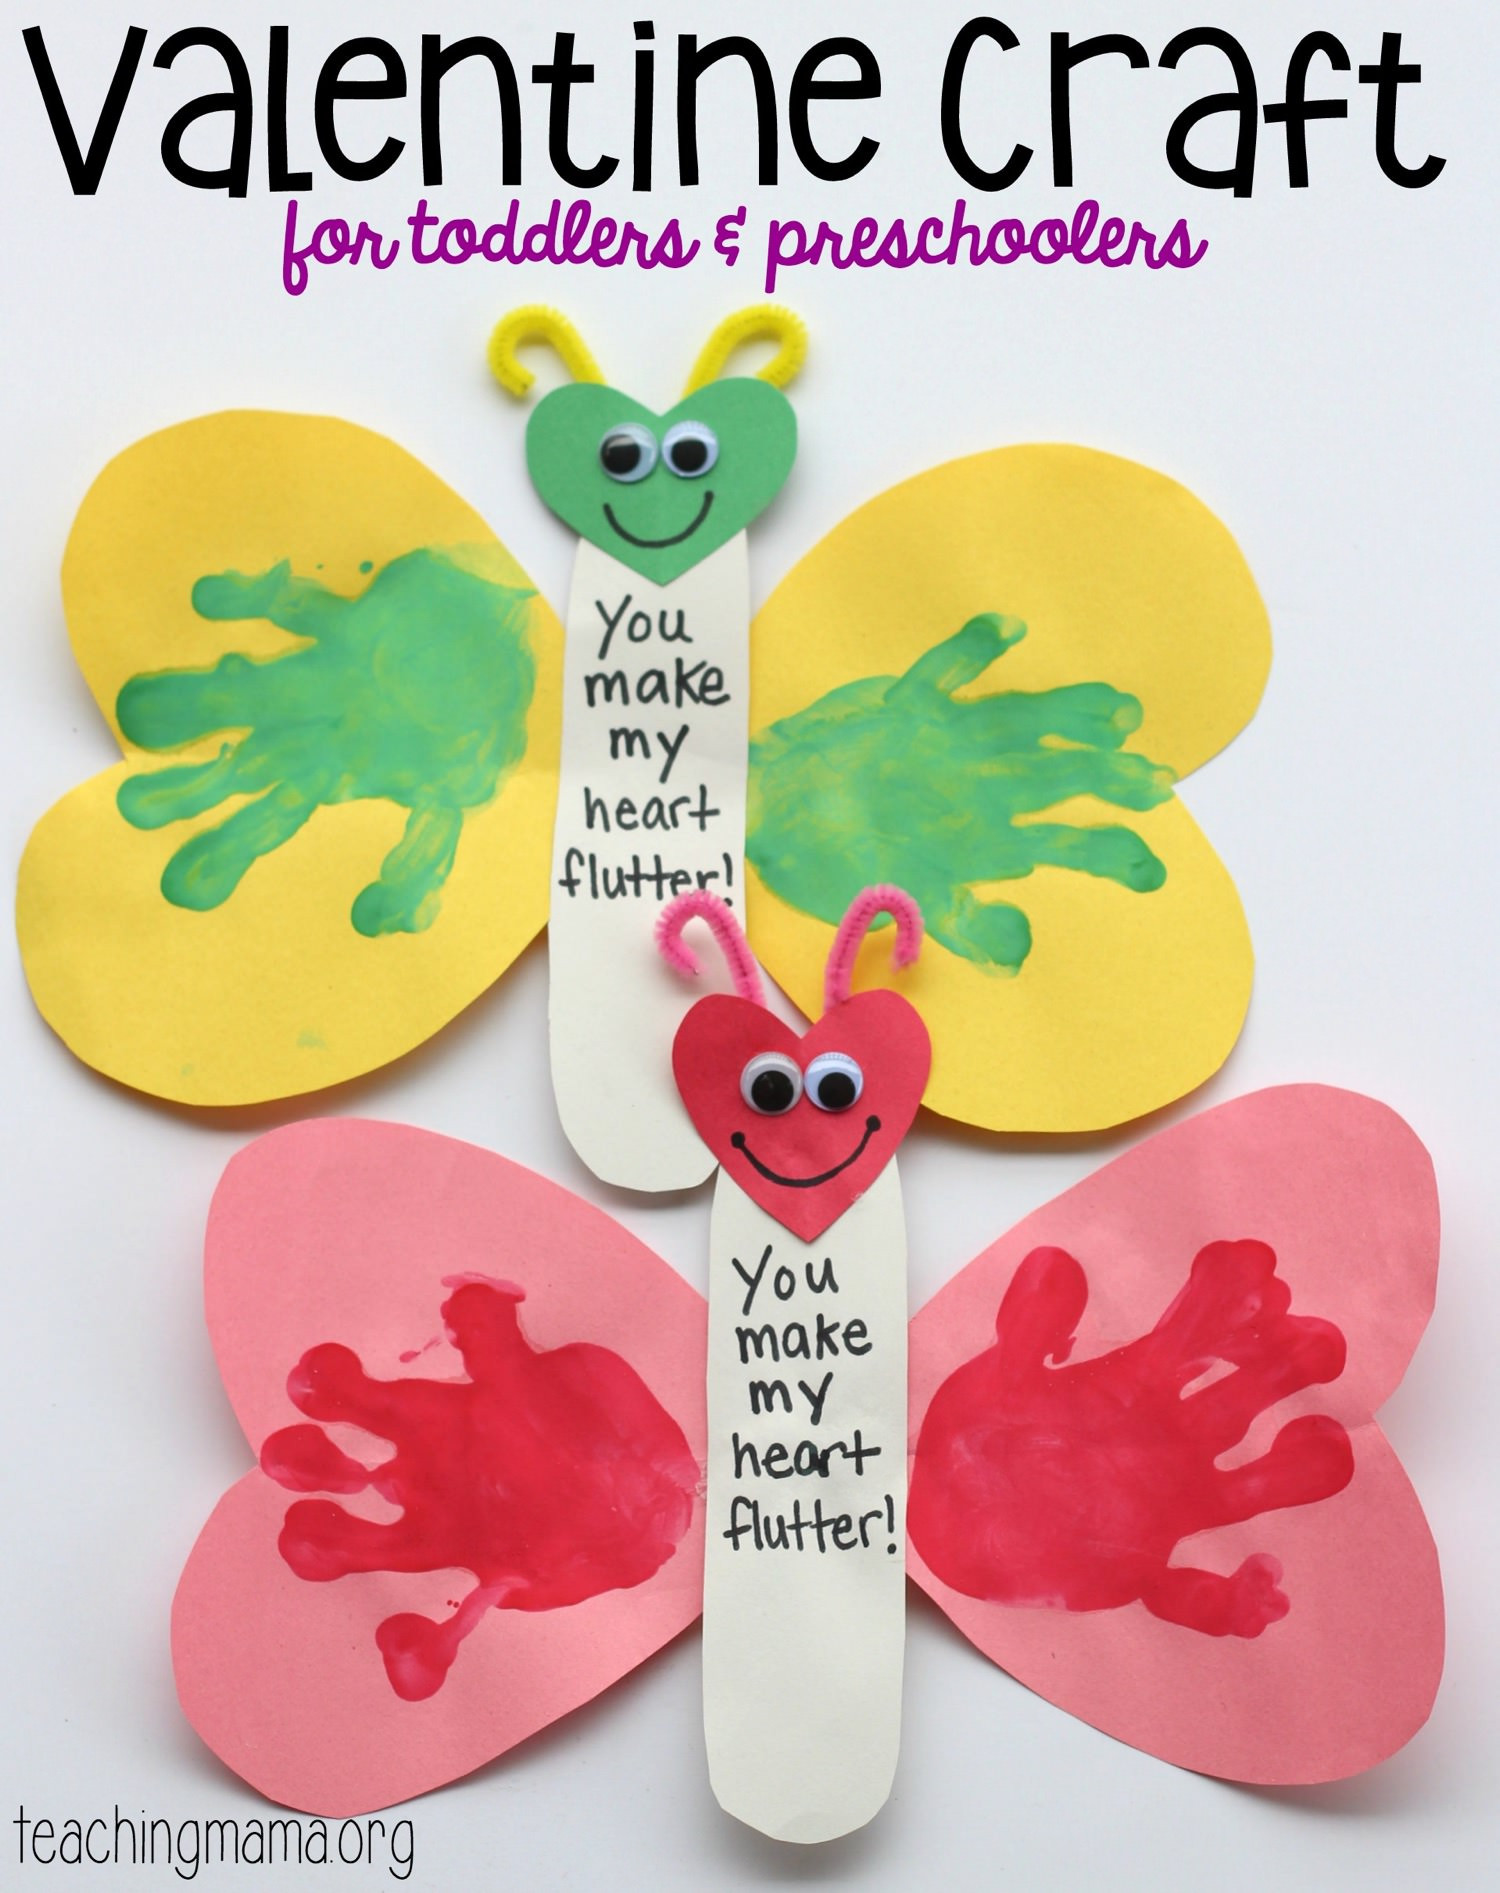 Best ideas about Valentine Crafts For Preschoolers To Make . Save or Pin You Make My Heart Flutter Valentine Craft Now.